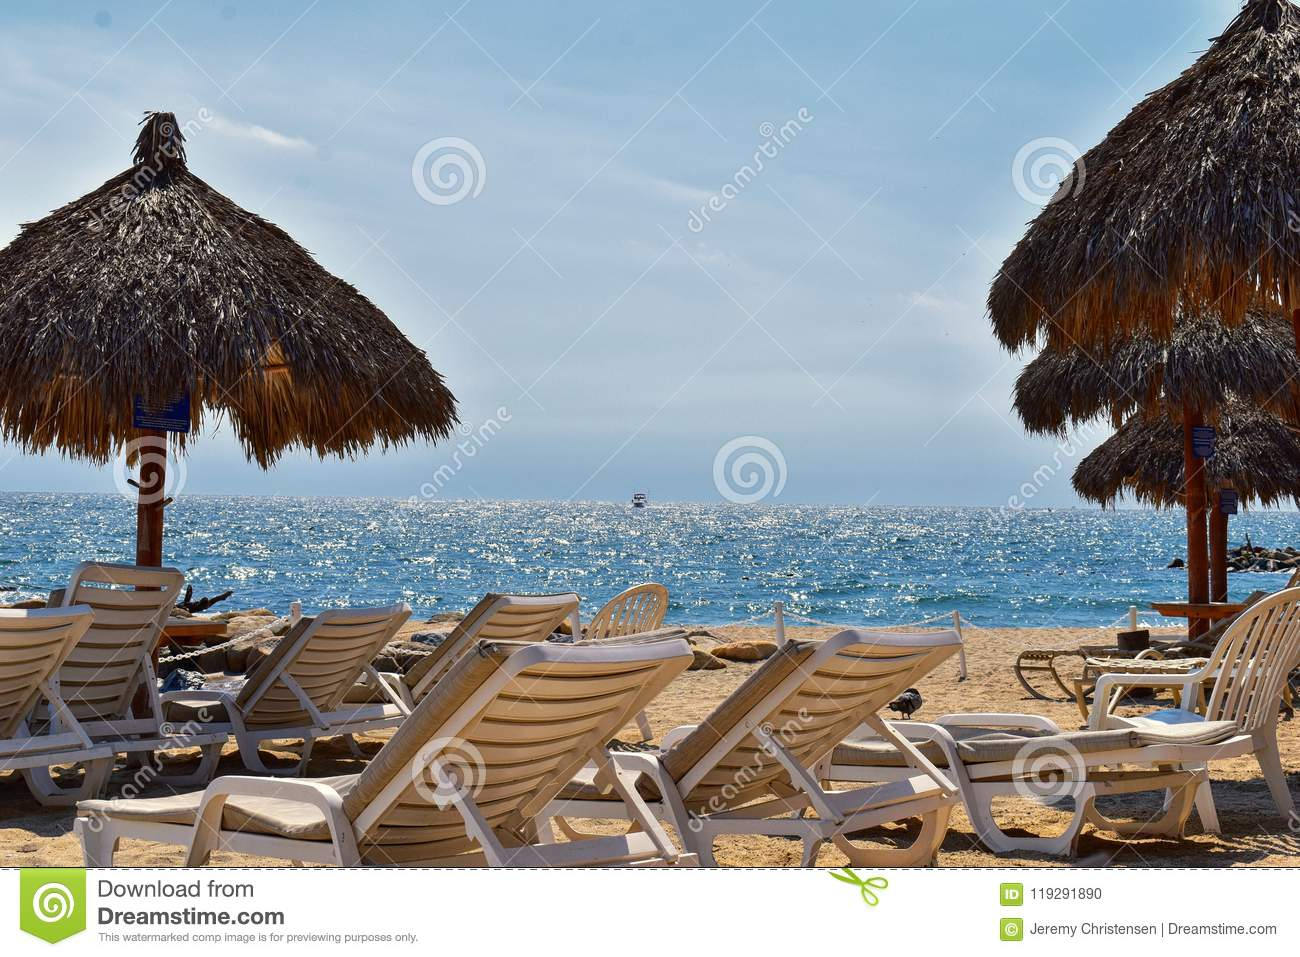 Blue Chairs Puerto Vallarta Beach City And Ocean View In Puerto Vallarta Mexico With Beach